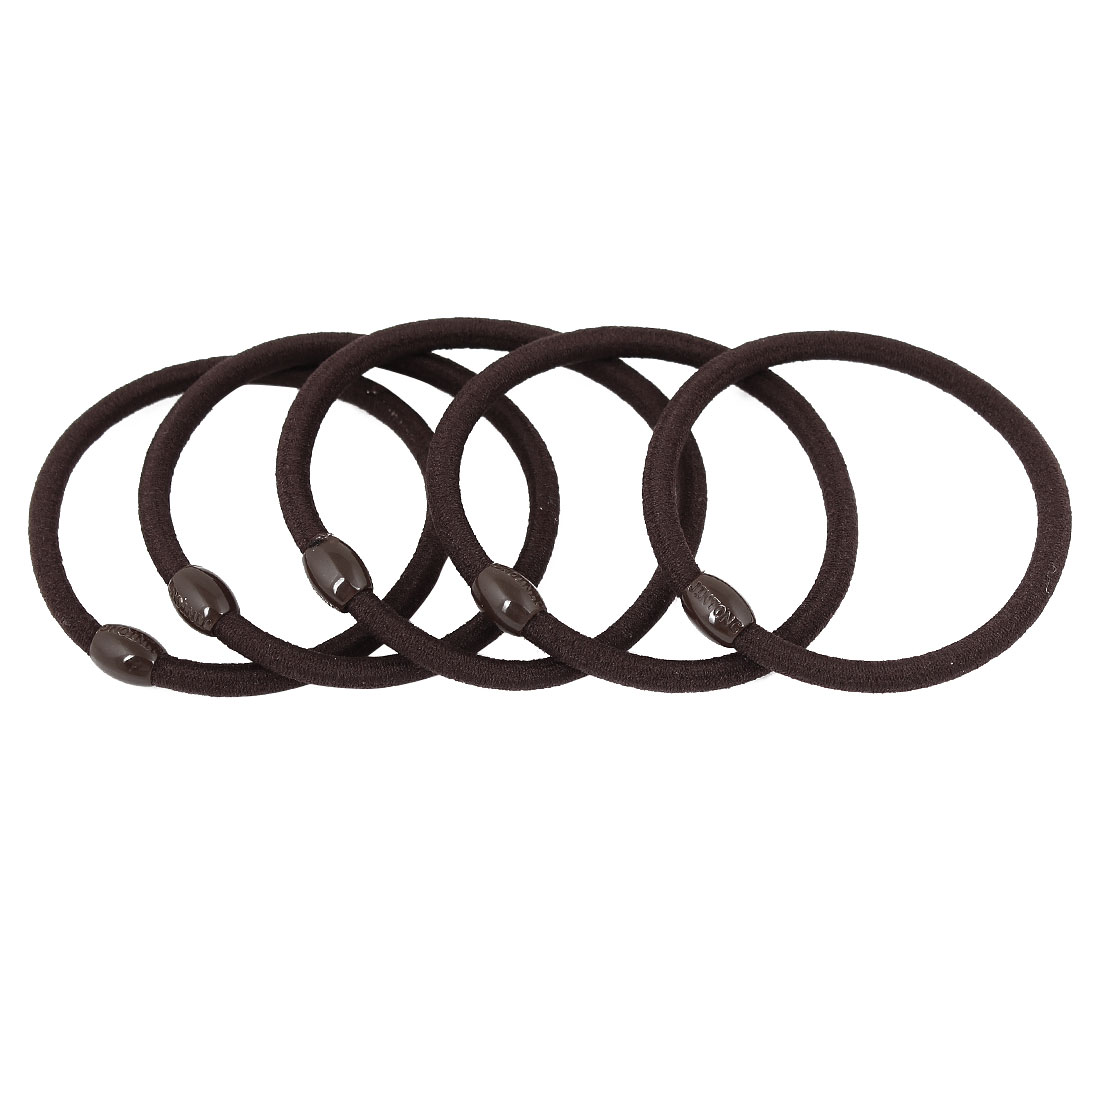 5 Pcs Dark Brown Oval Beads Ponytail Holders Stretchy Hair Tie